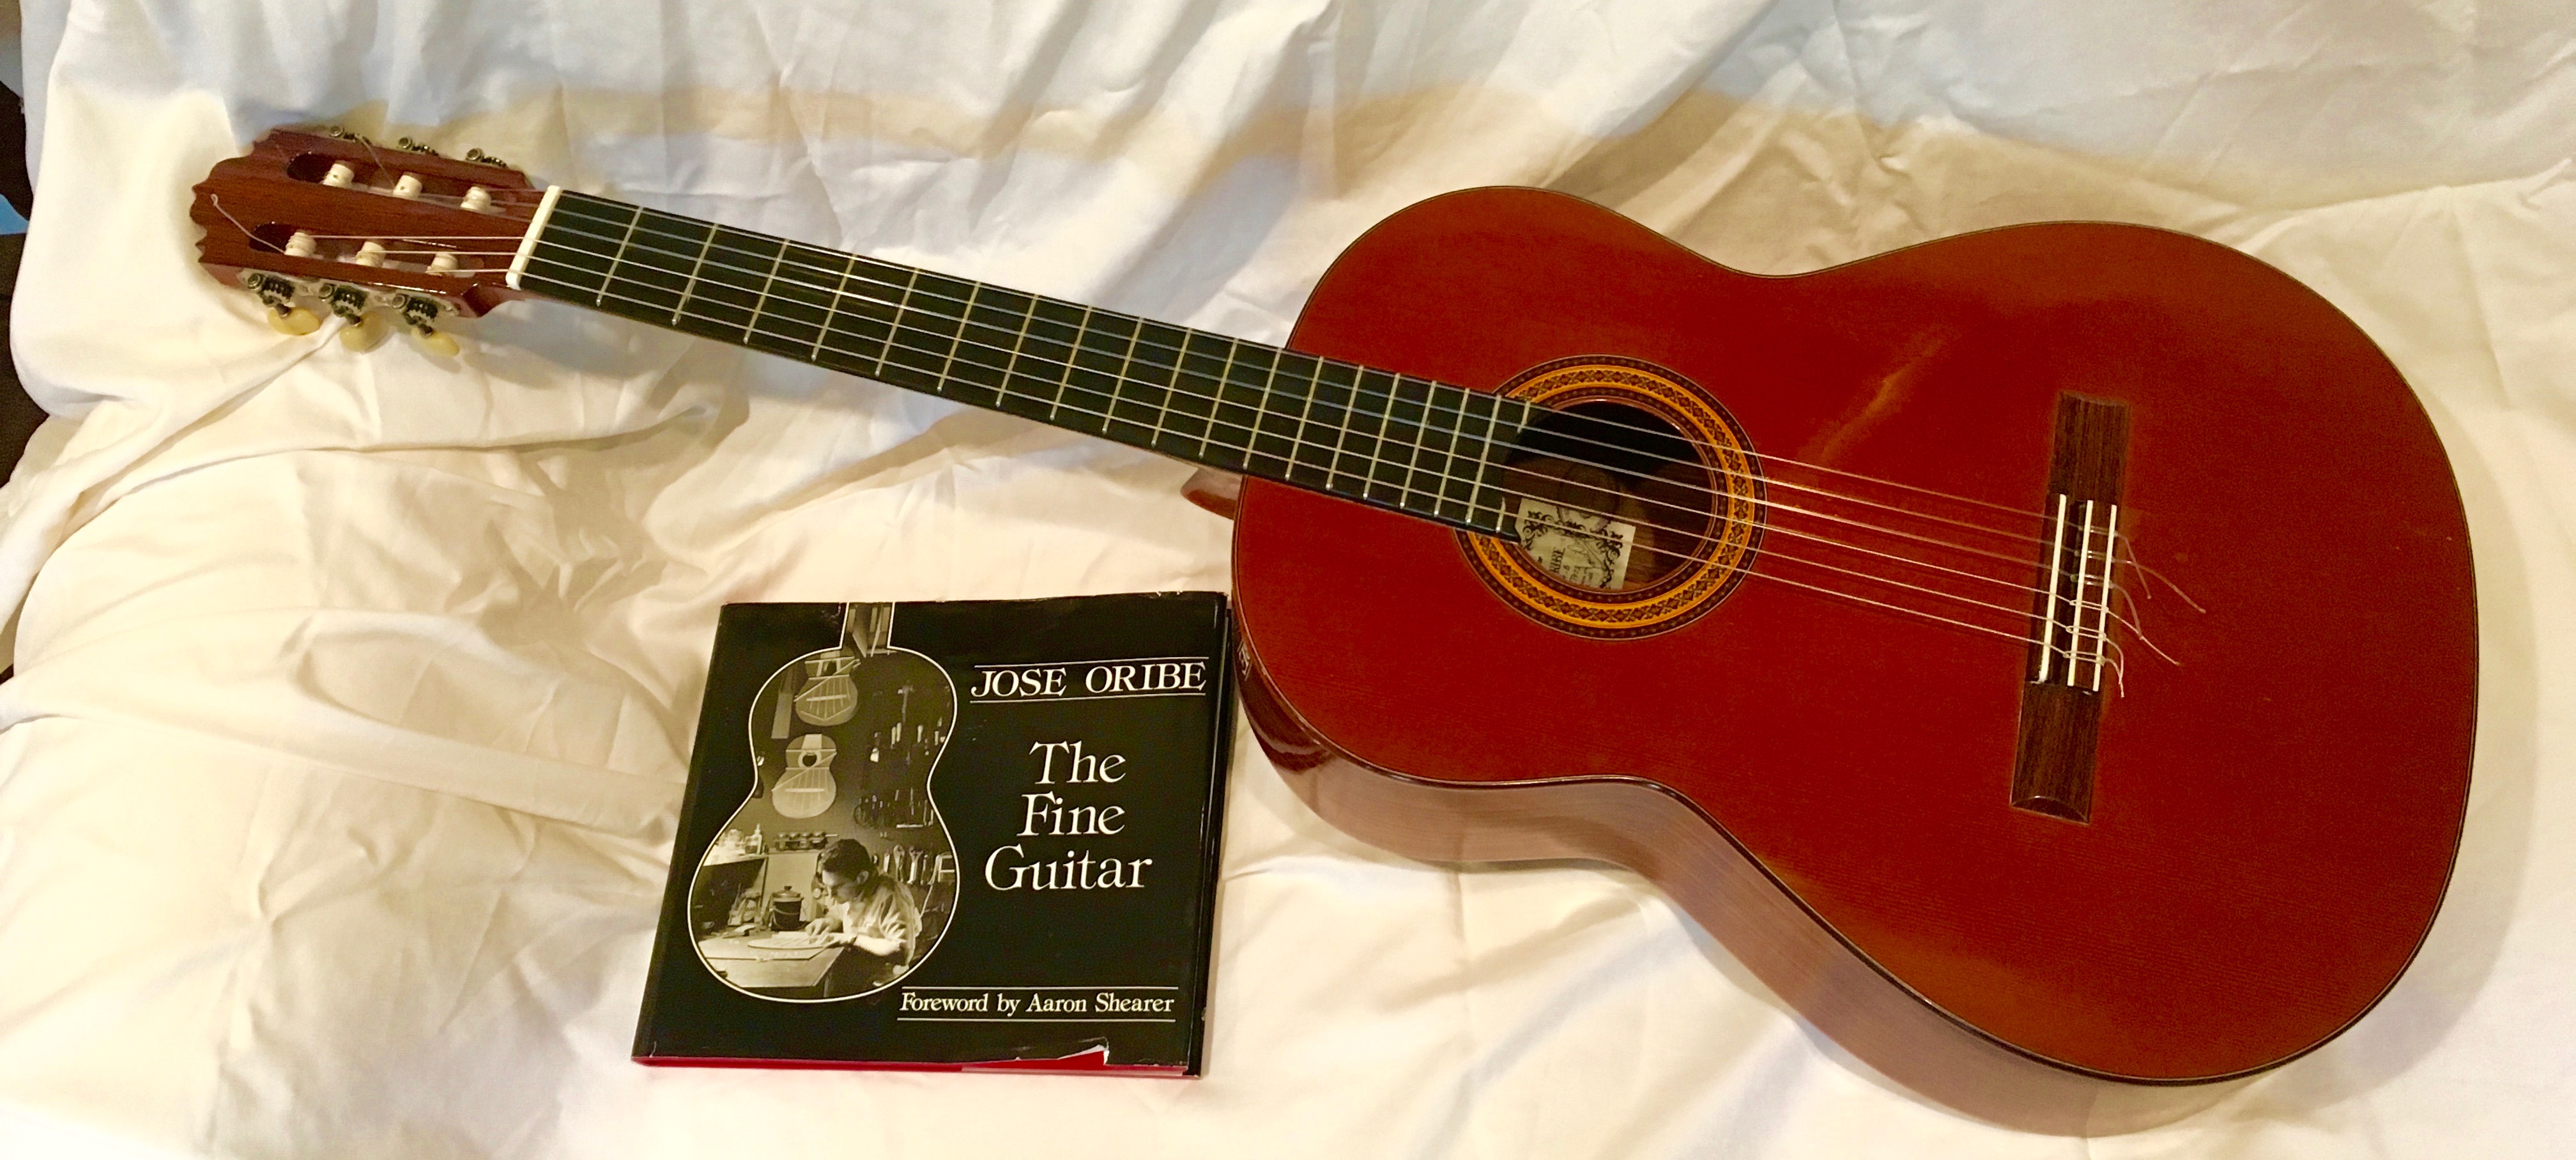 *Oribe guitar, case and book (1)